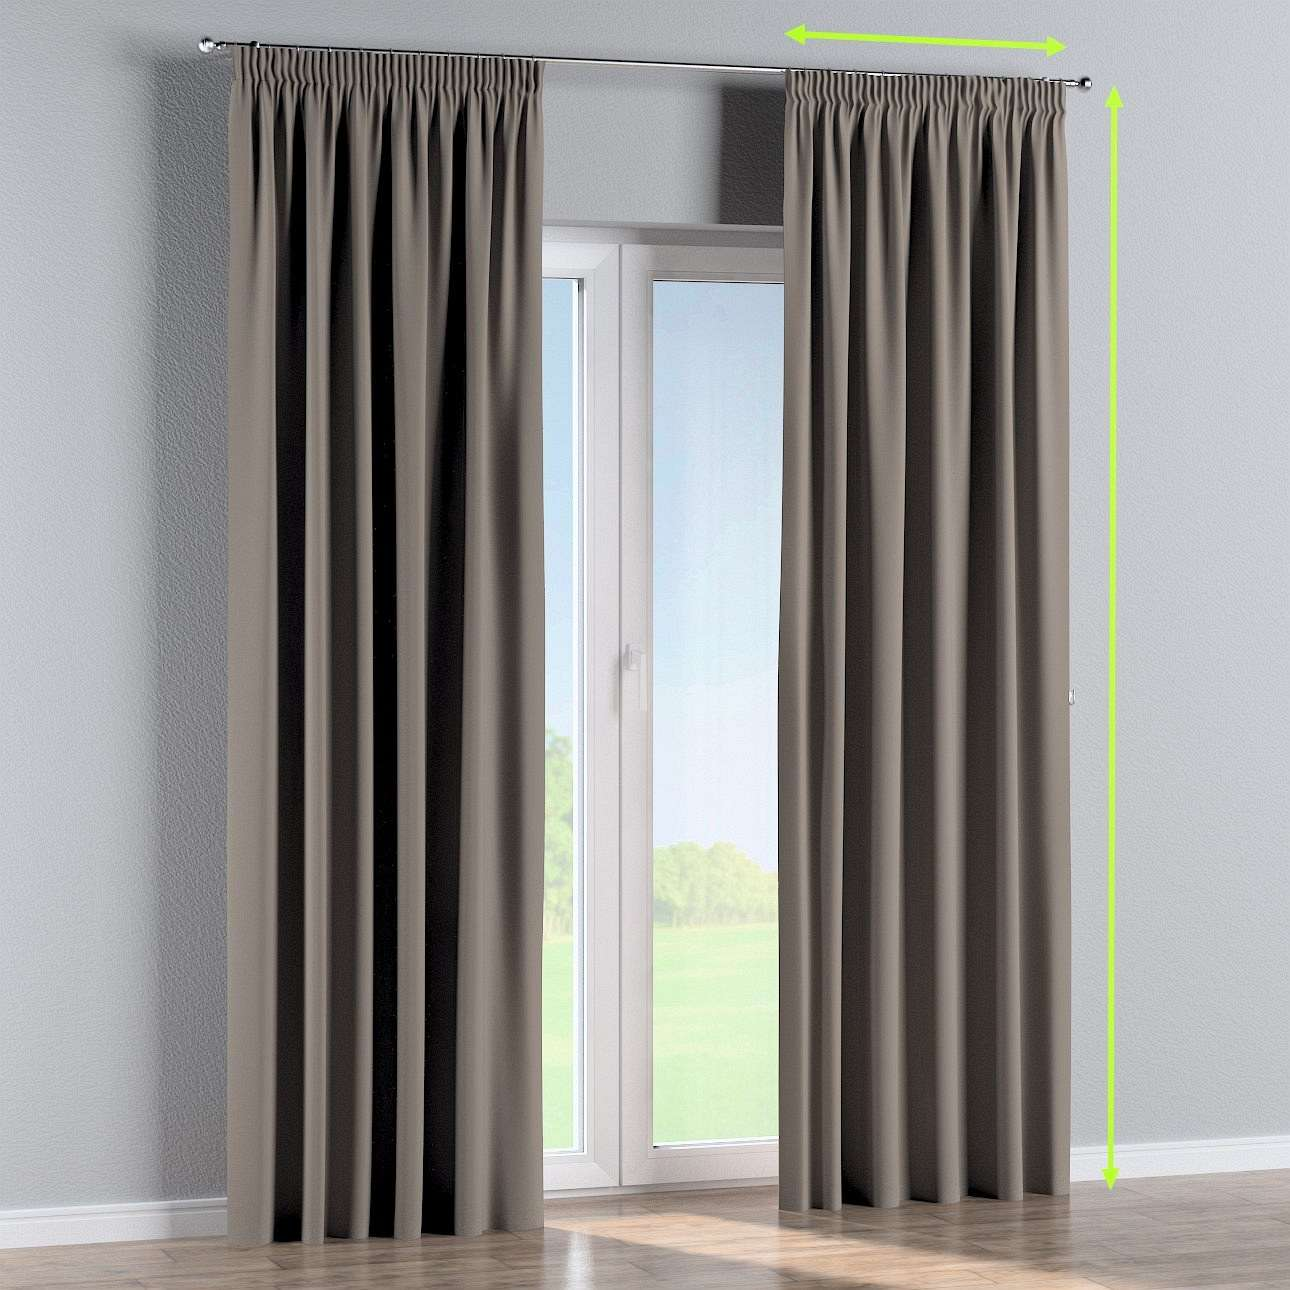 Pencil pleat curtains in collection Blackout, fabric: 269-81